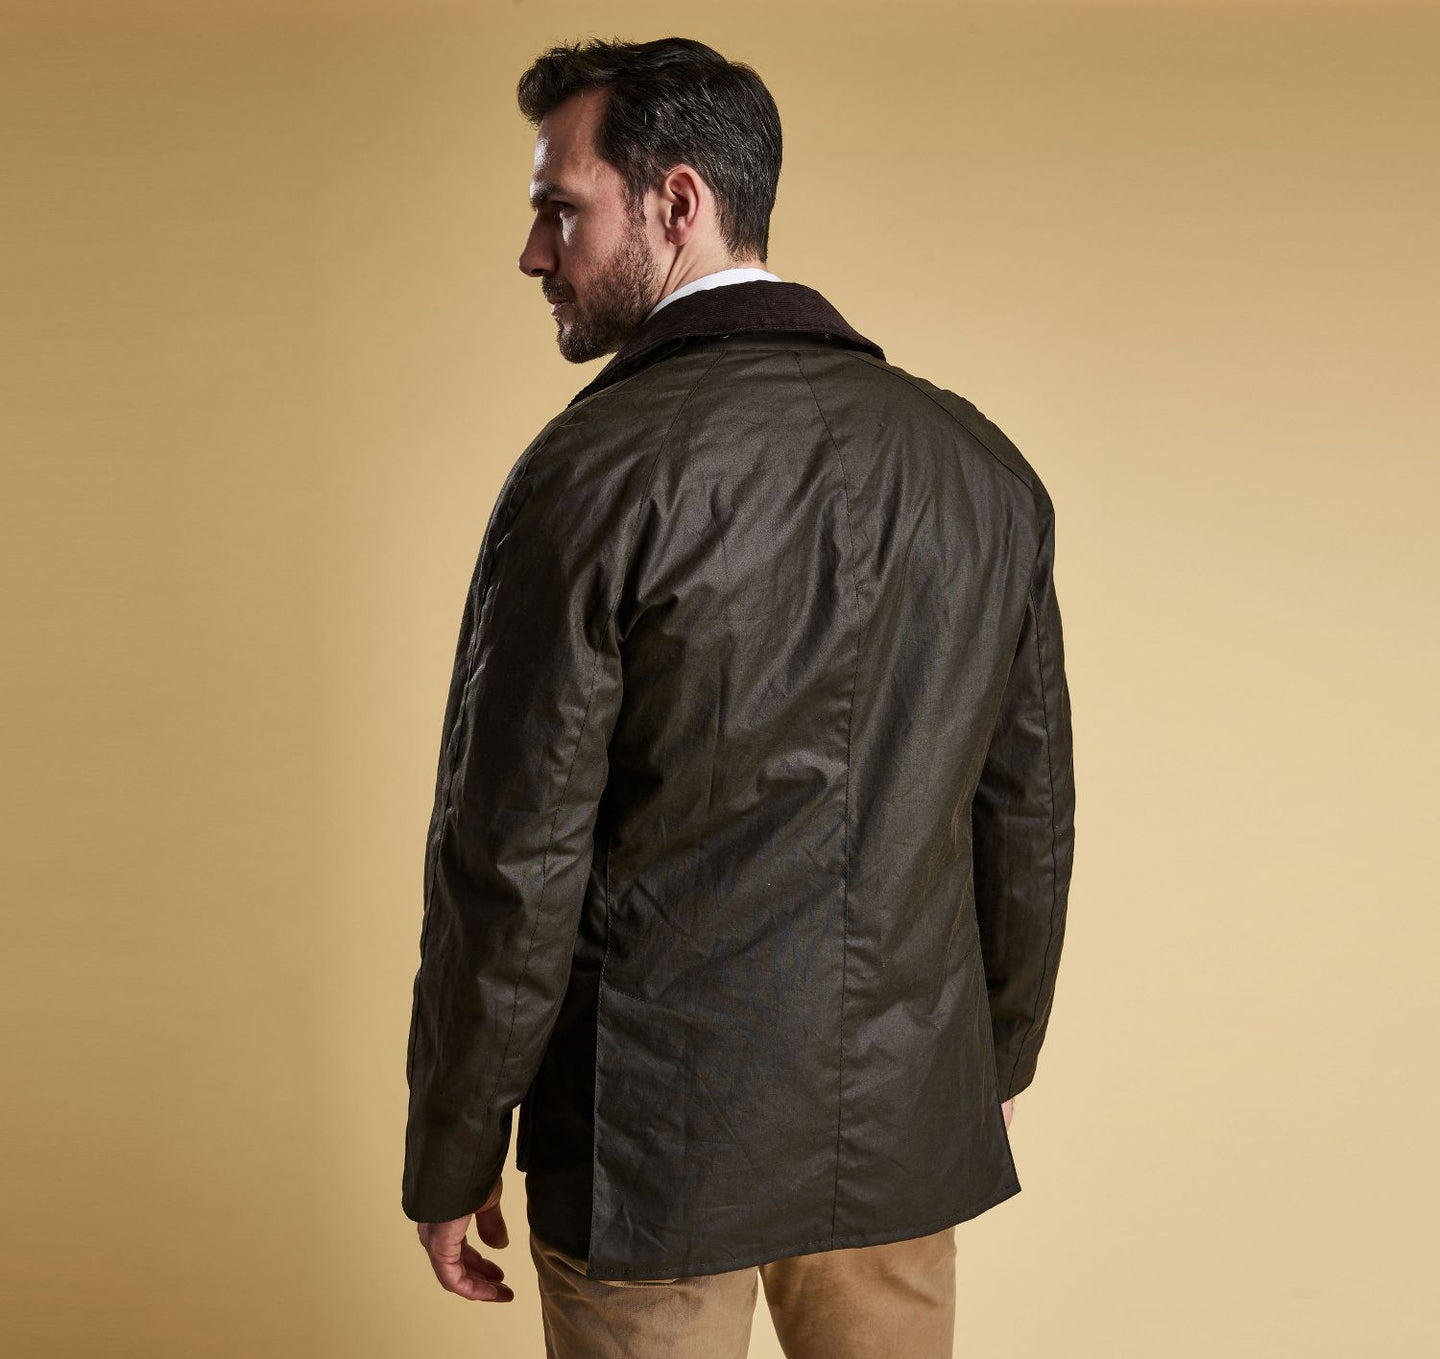 Barbour - Ashby Wax Jacket - Olive - Lardieri Store